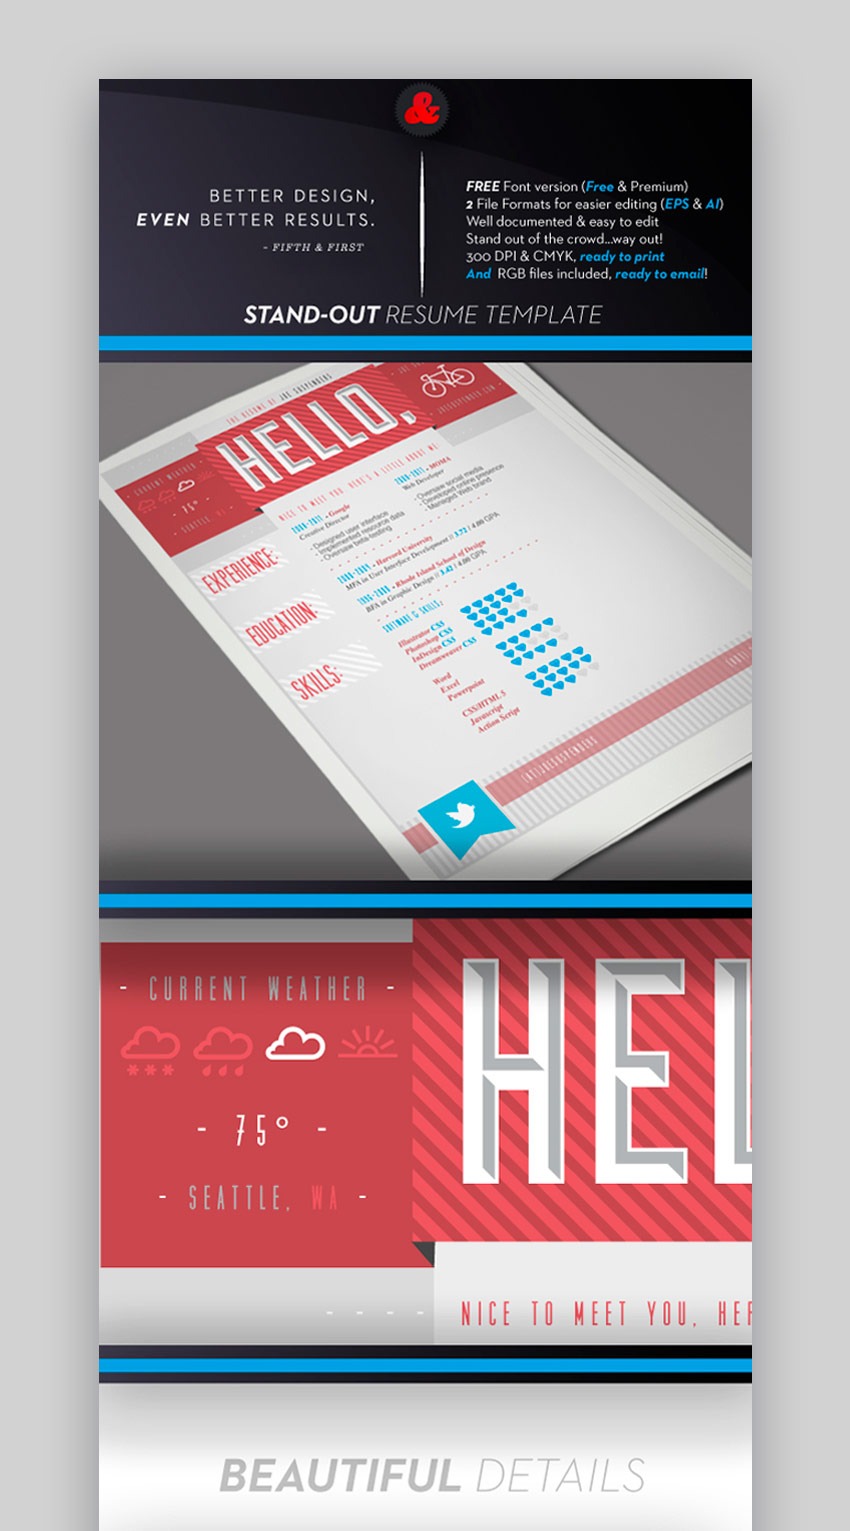 Stand-Out Resume Template